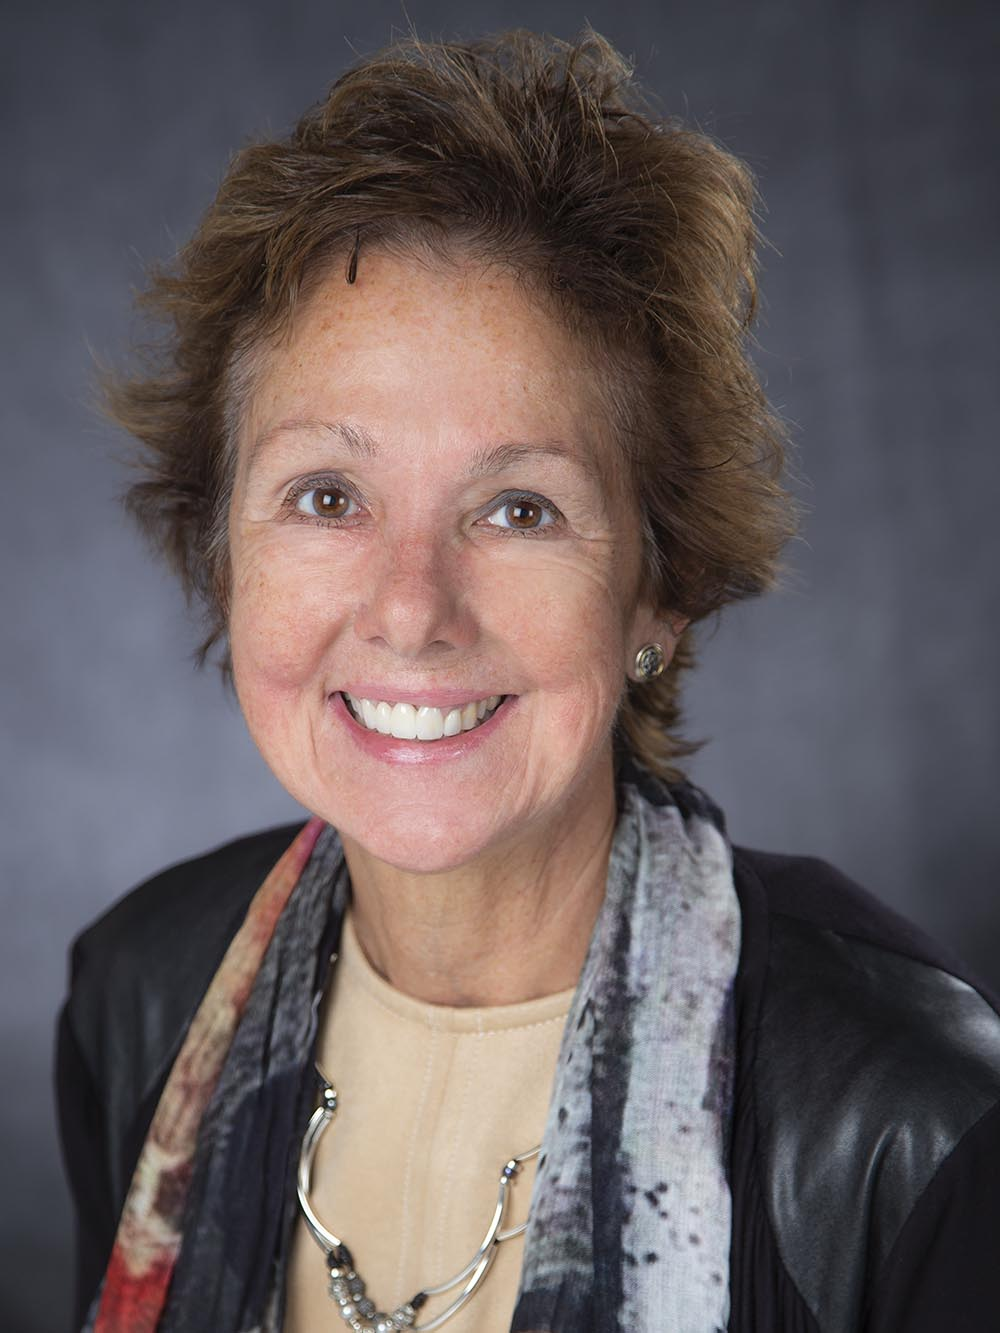 Mary Ottolini, MD, MPH, MEd